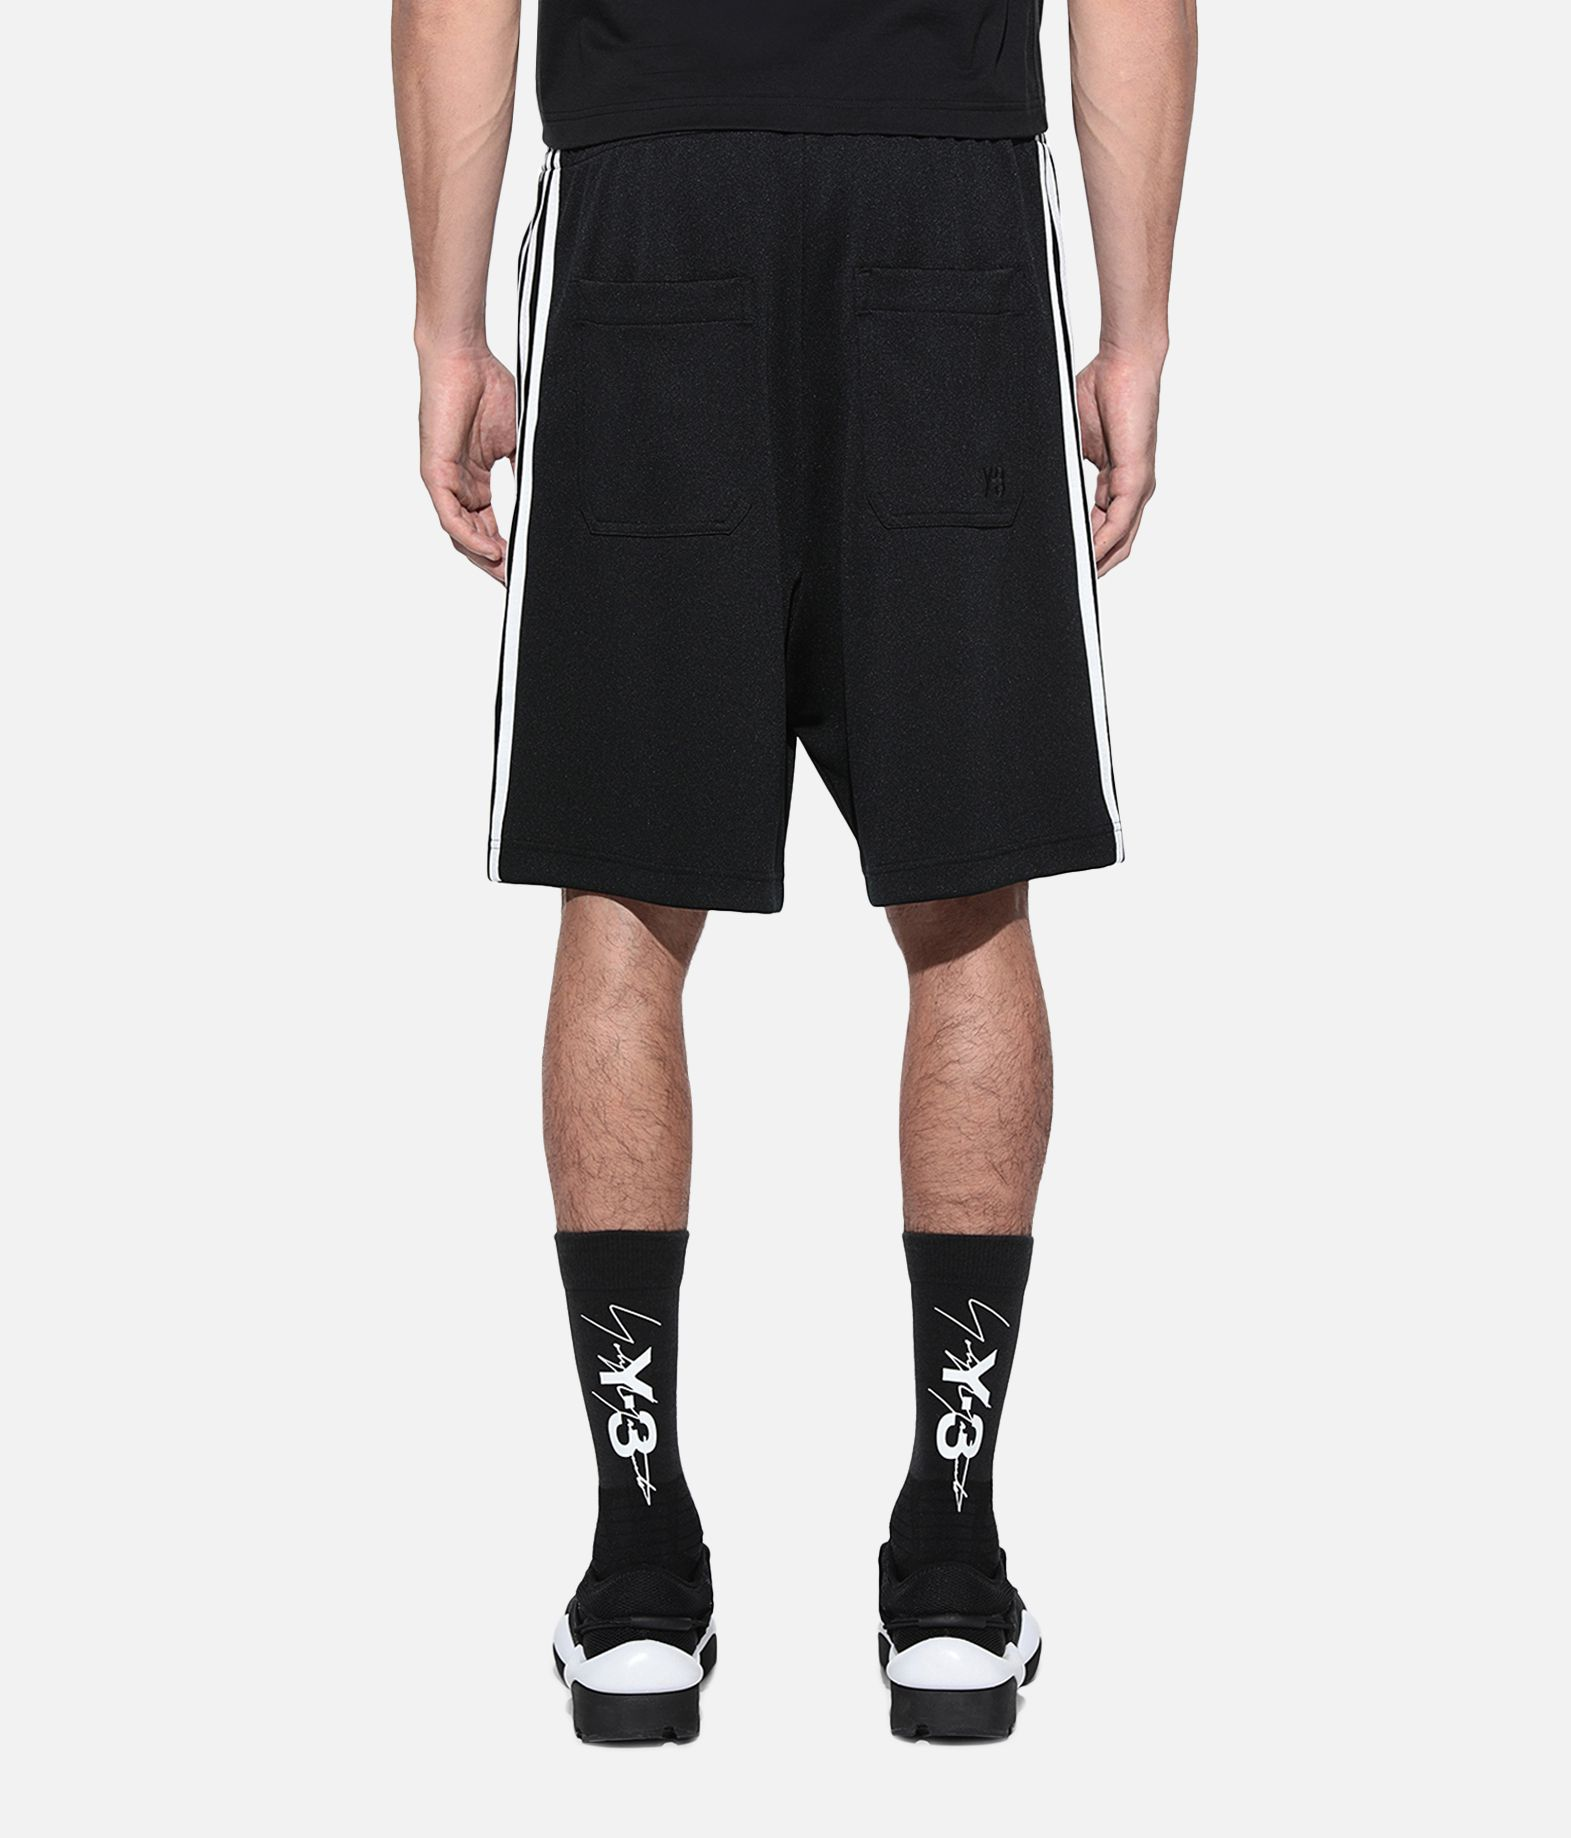 Y-3 Y-3 3-Stripes Track Shorts Track pant Man d